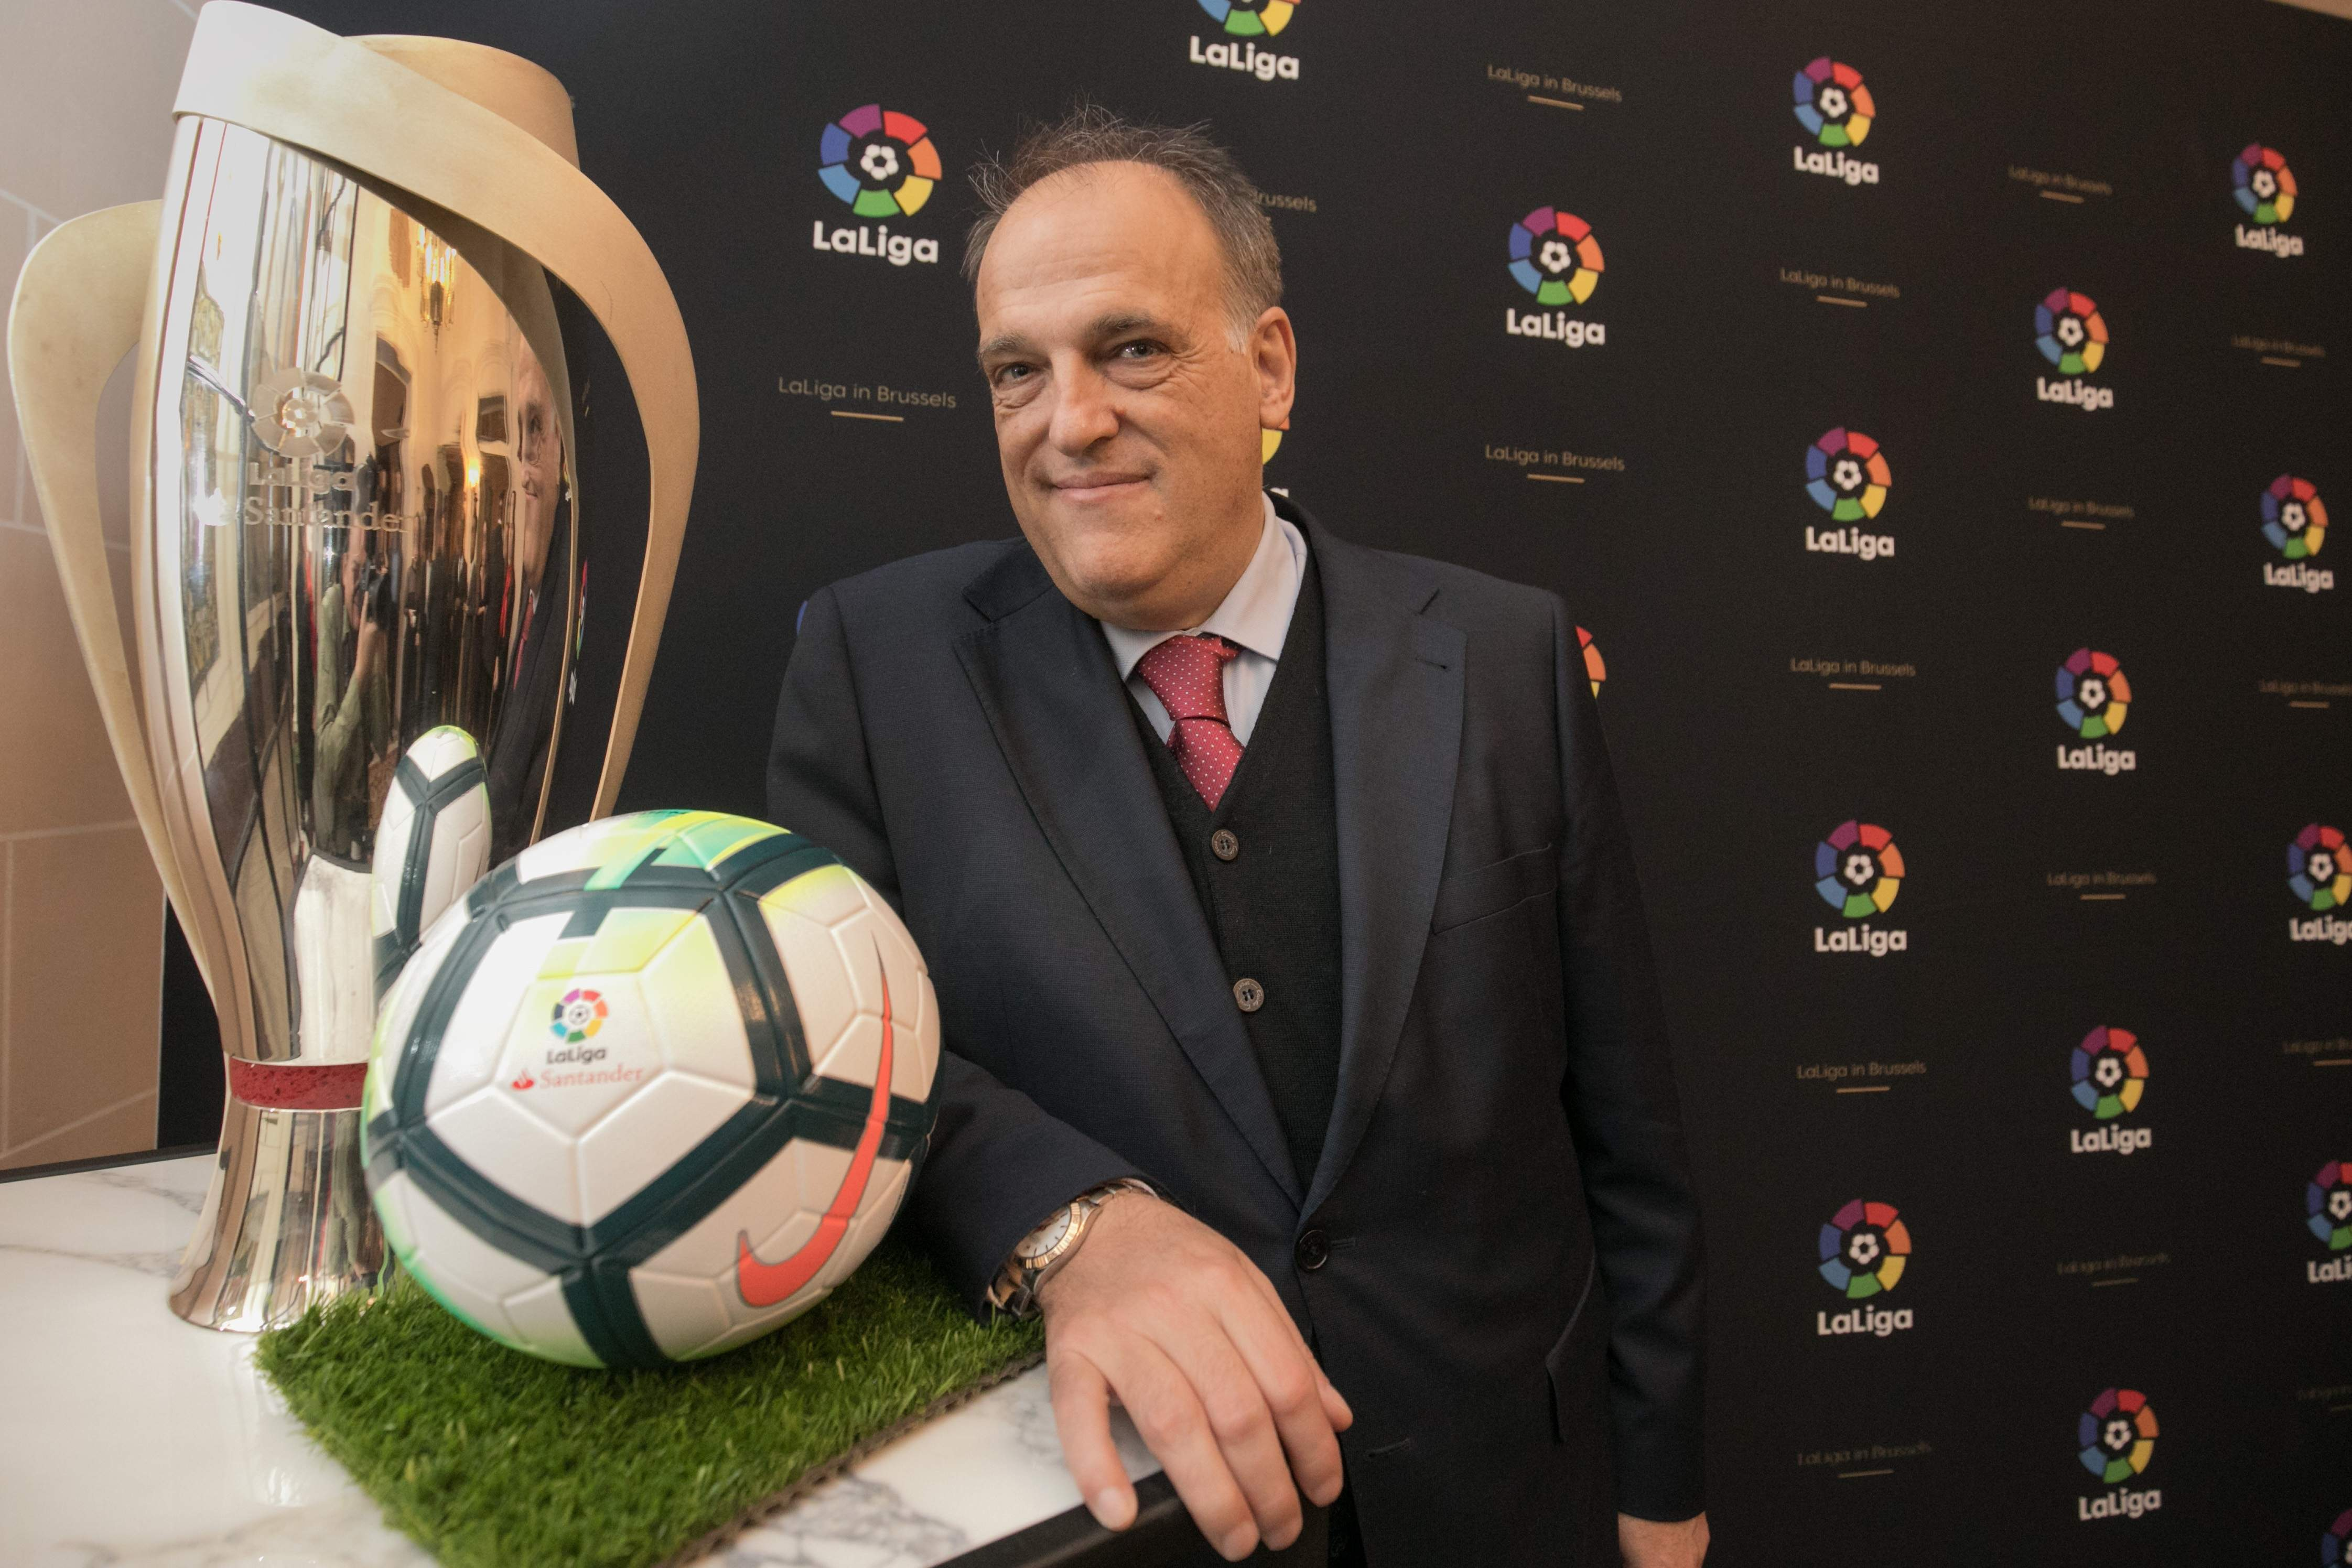 tebas-nov2017-laliga-getty.jpg